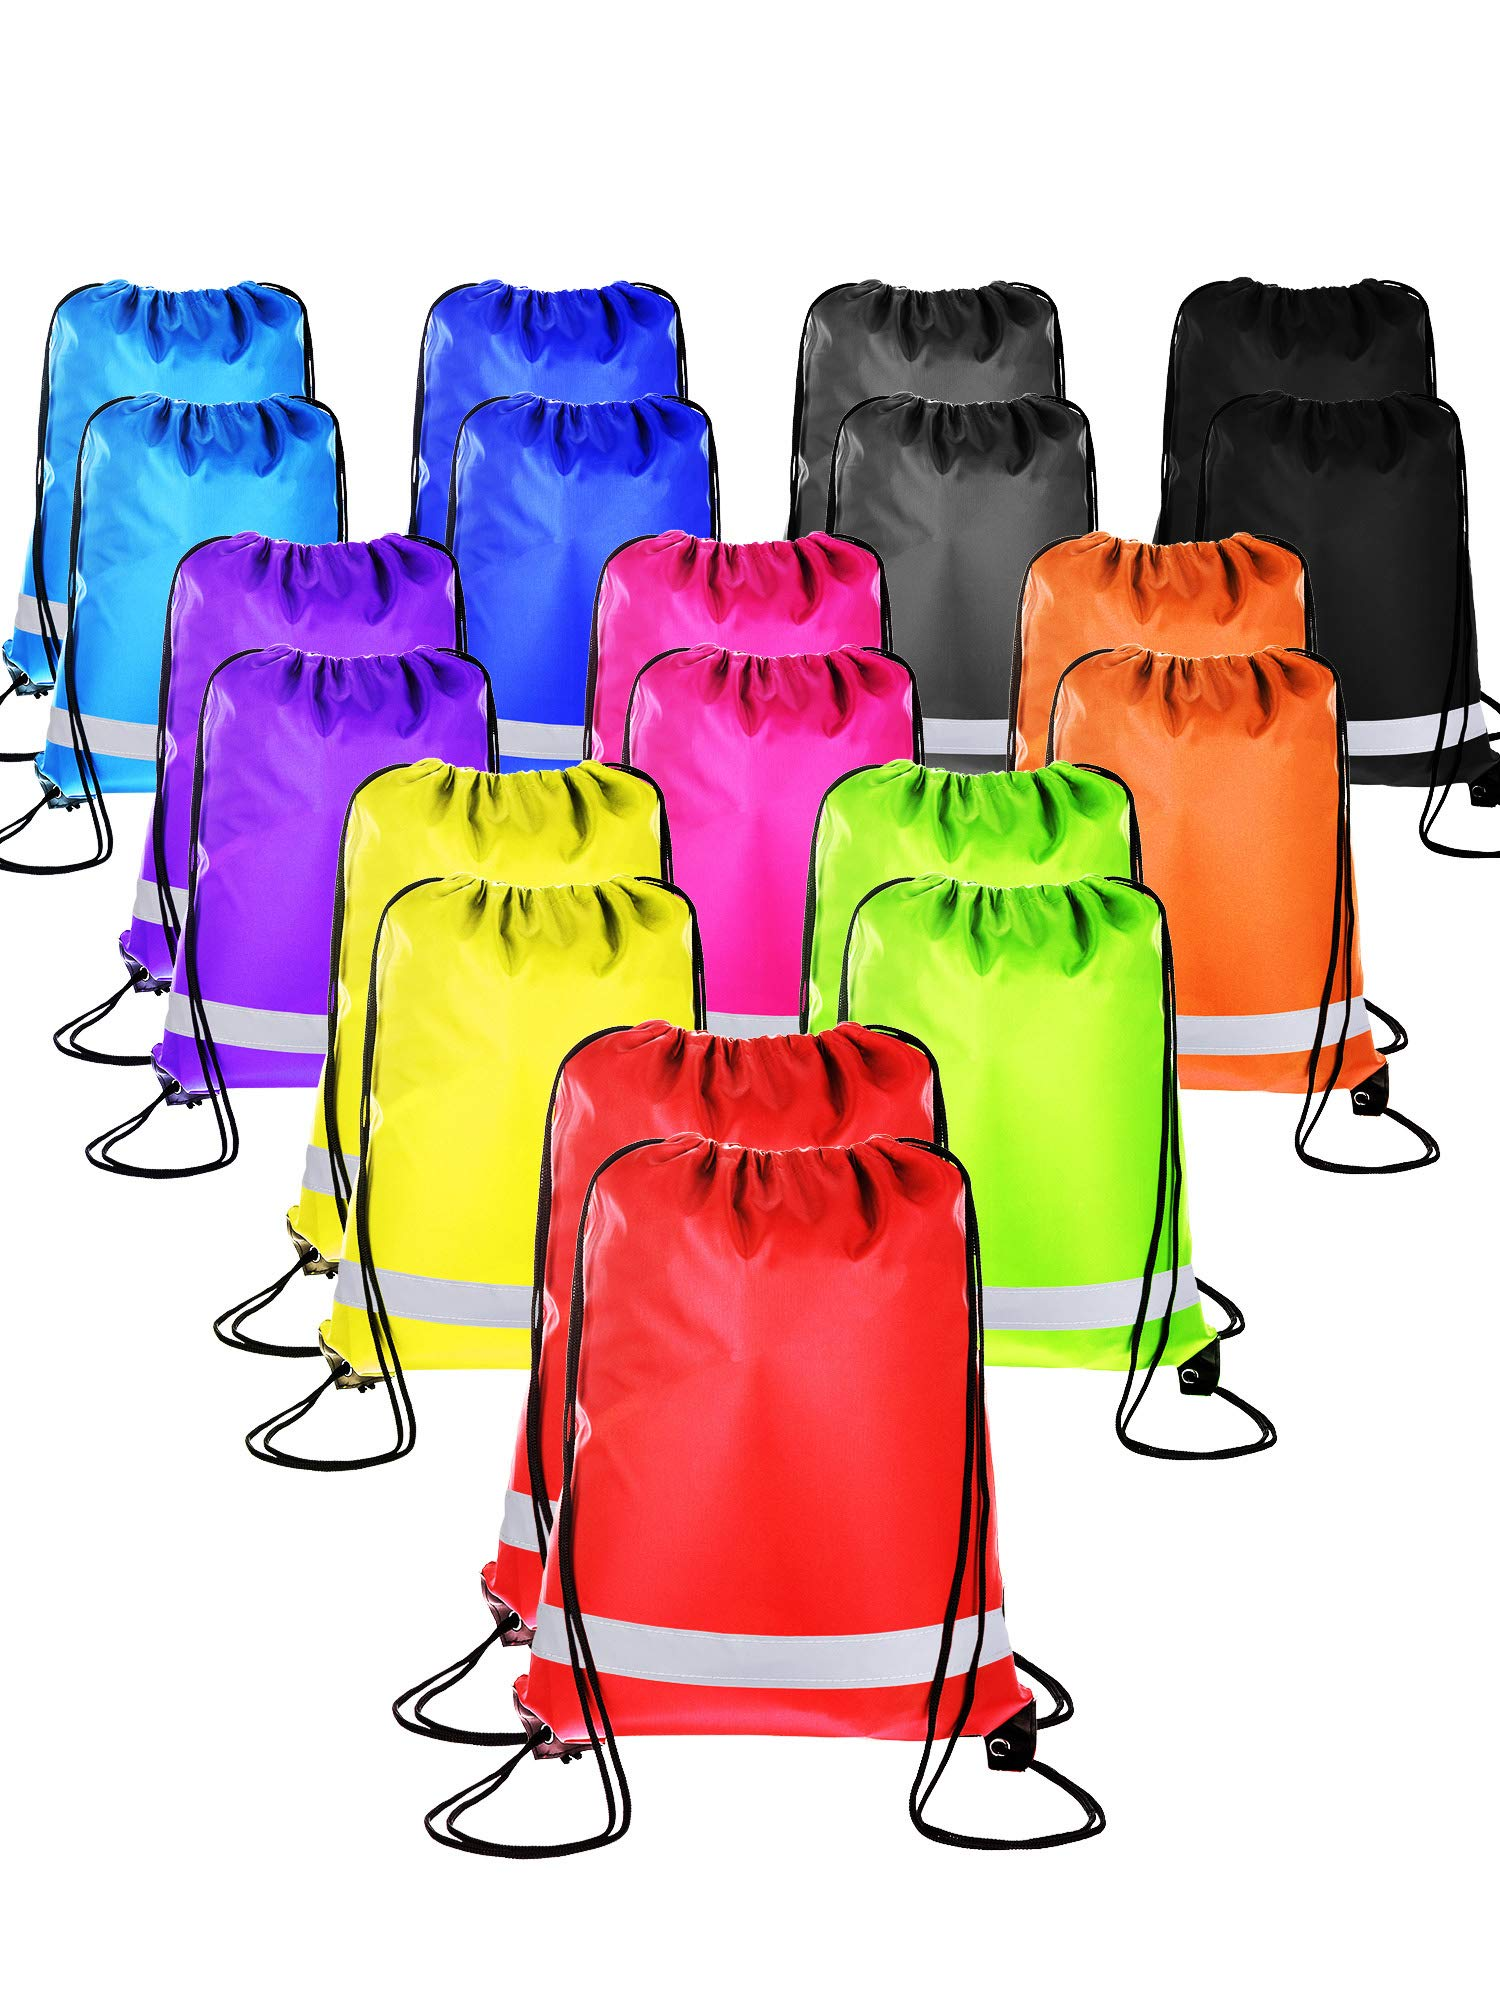 Shappy 20 Pieces Drawstring Bag Backpack Sport Bag Cinch Tote Travel Rucksack for Traveling and Storage (Multicolored 3)